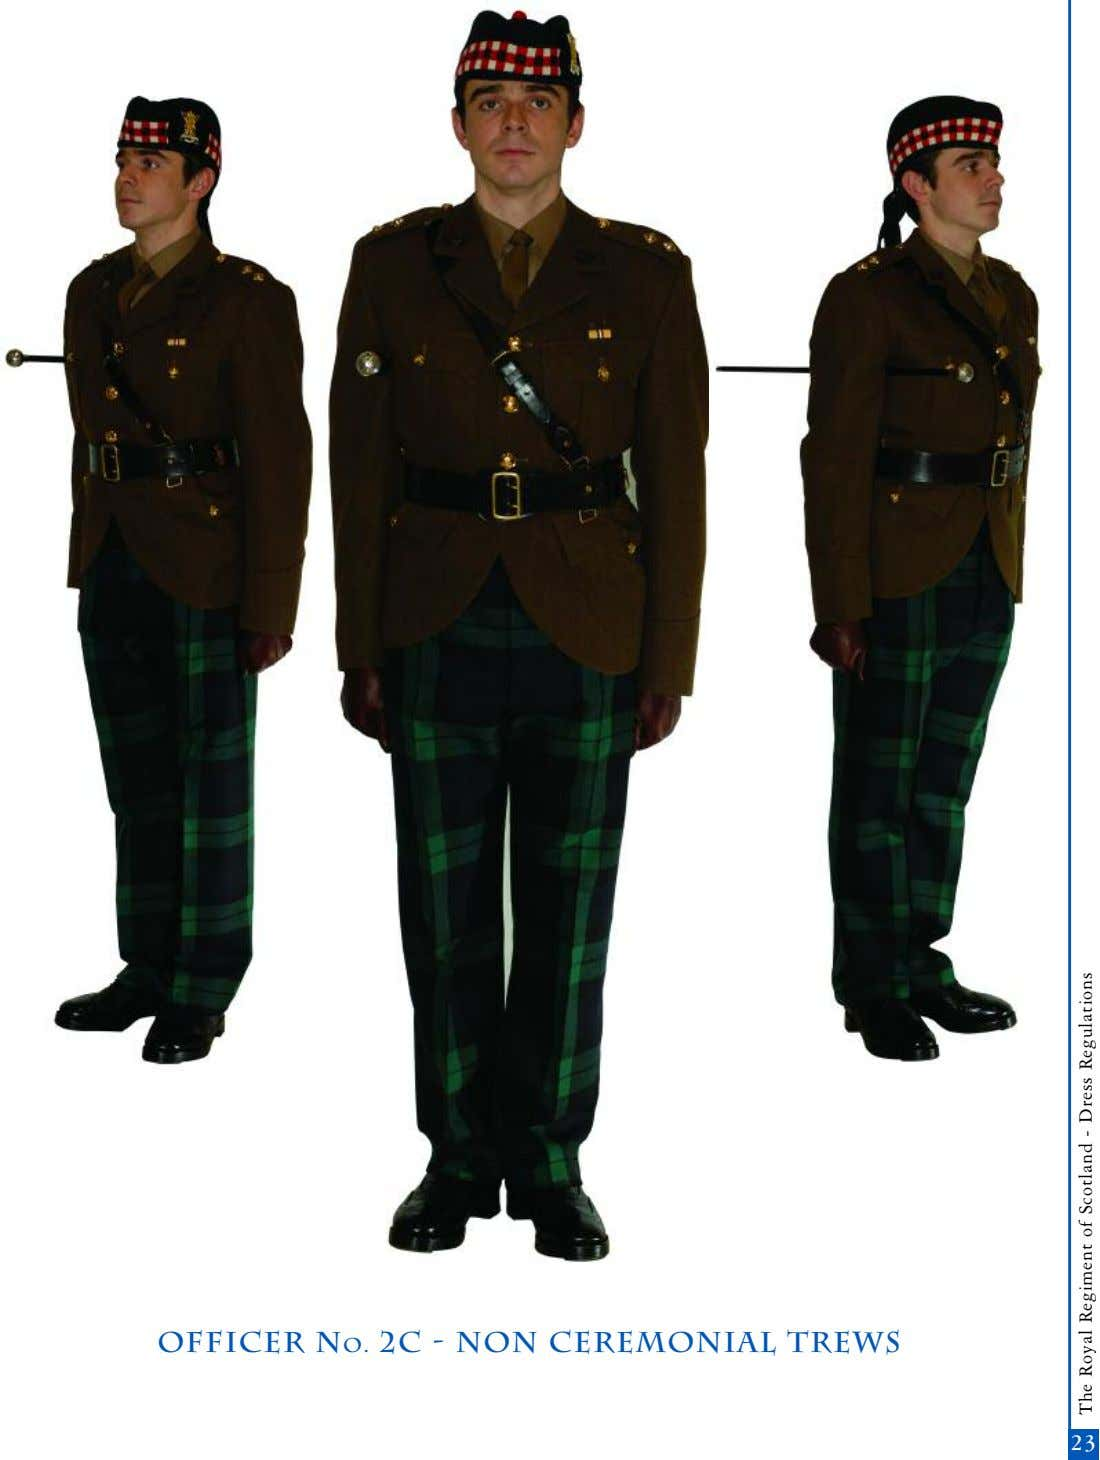 OFFICER No. 2c - non Ceremonial trews 21 23 The Royal Regiment of Scotland -